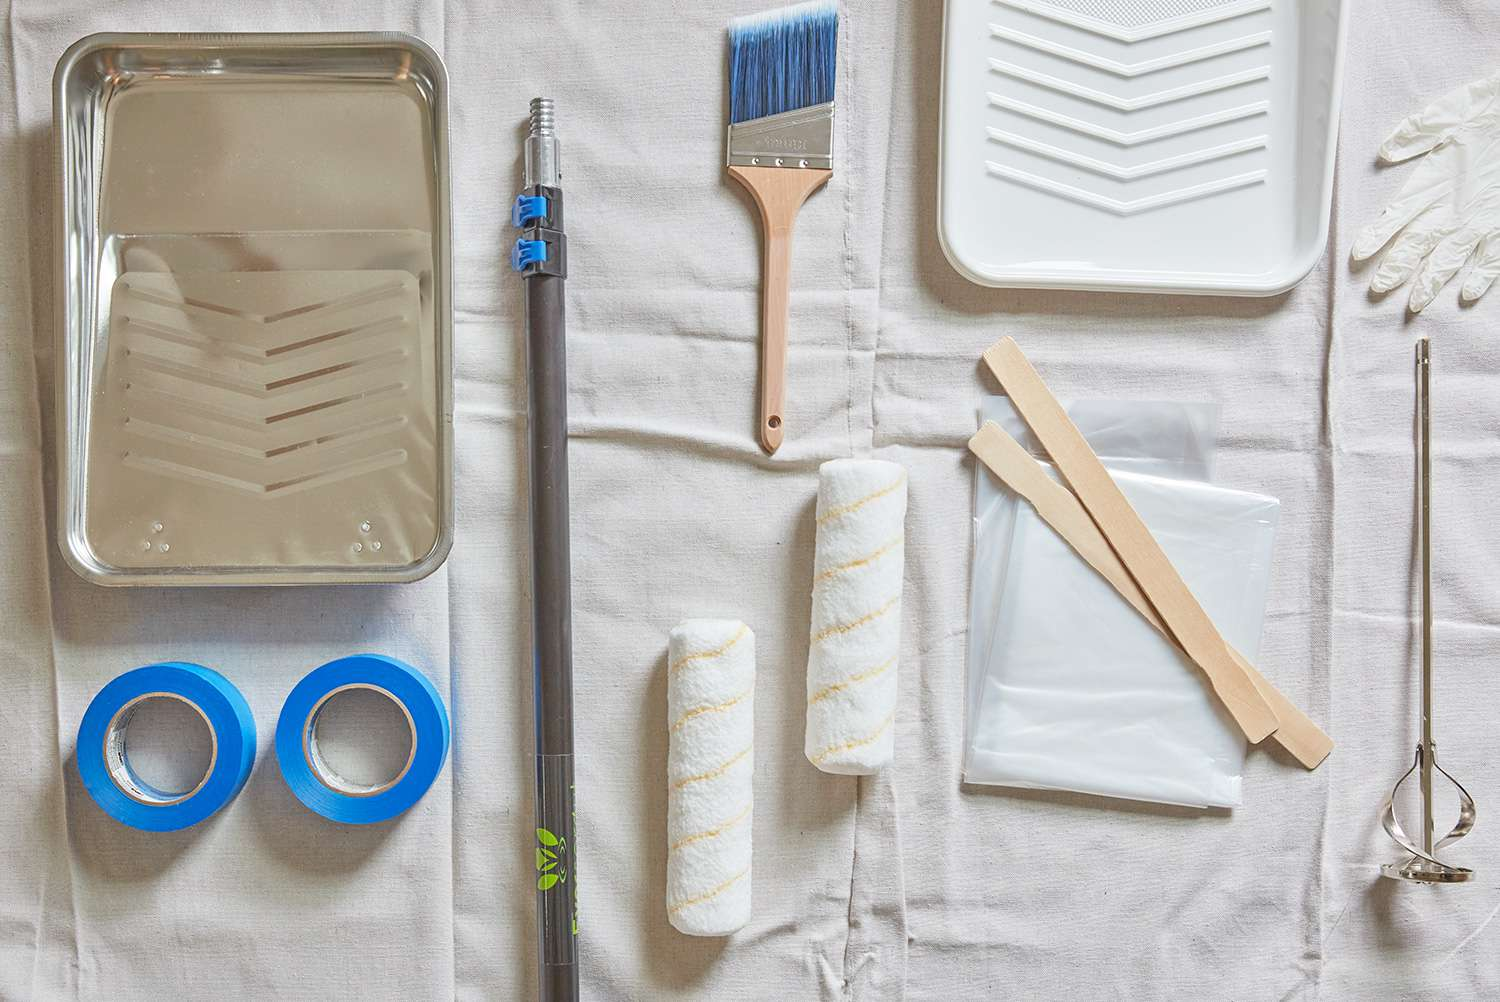 Tools and supplies to paint a ceiling